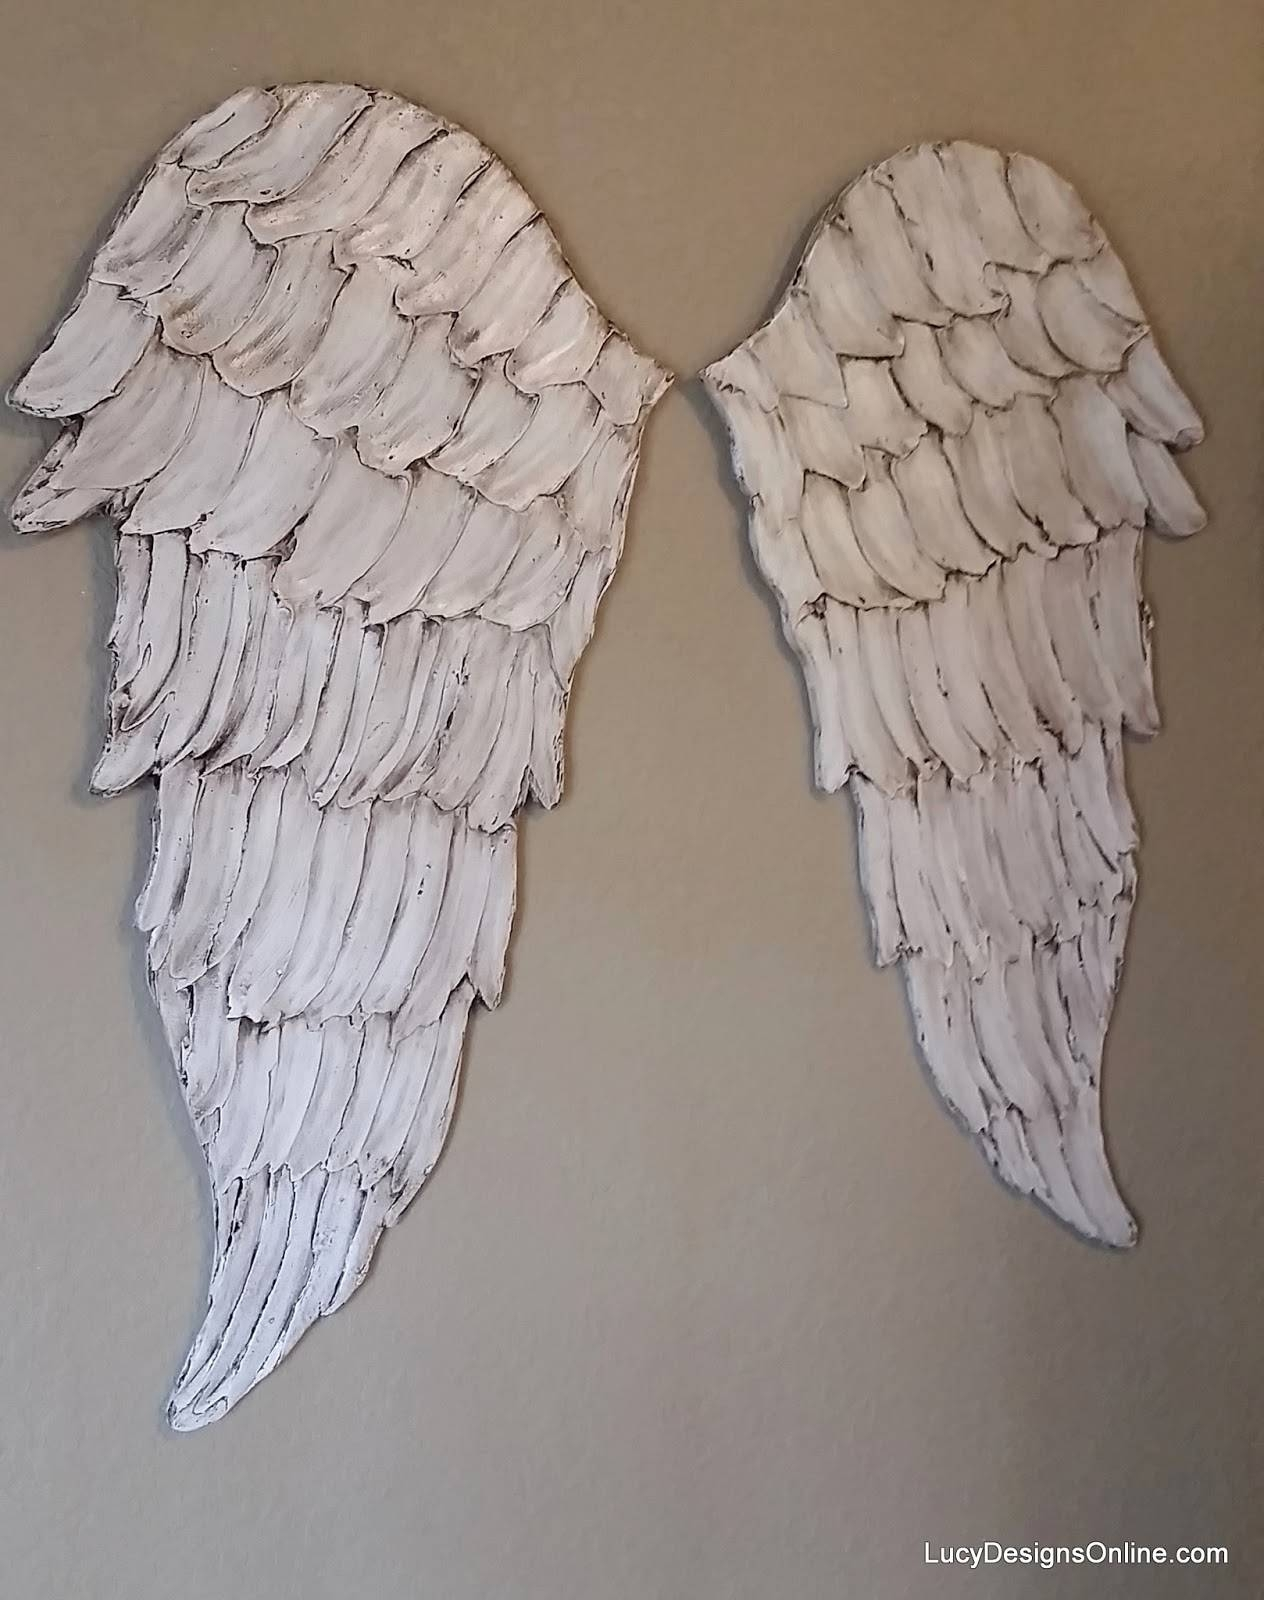 Angel Wings Textured Wood, Wall Art, Carved Wood Look, Angel Wing Pertaining To Most Current Angel Wings Wall Art (View 3 of 20)